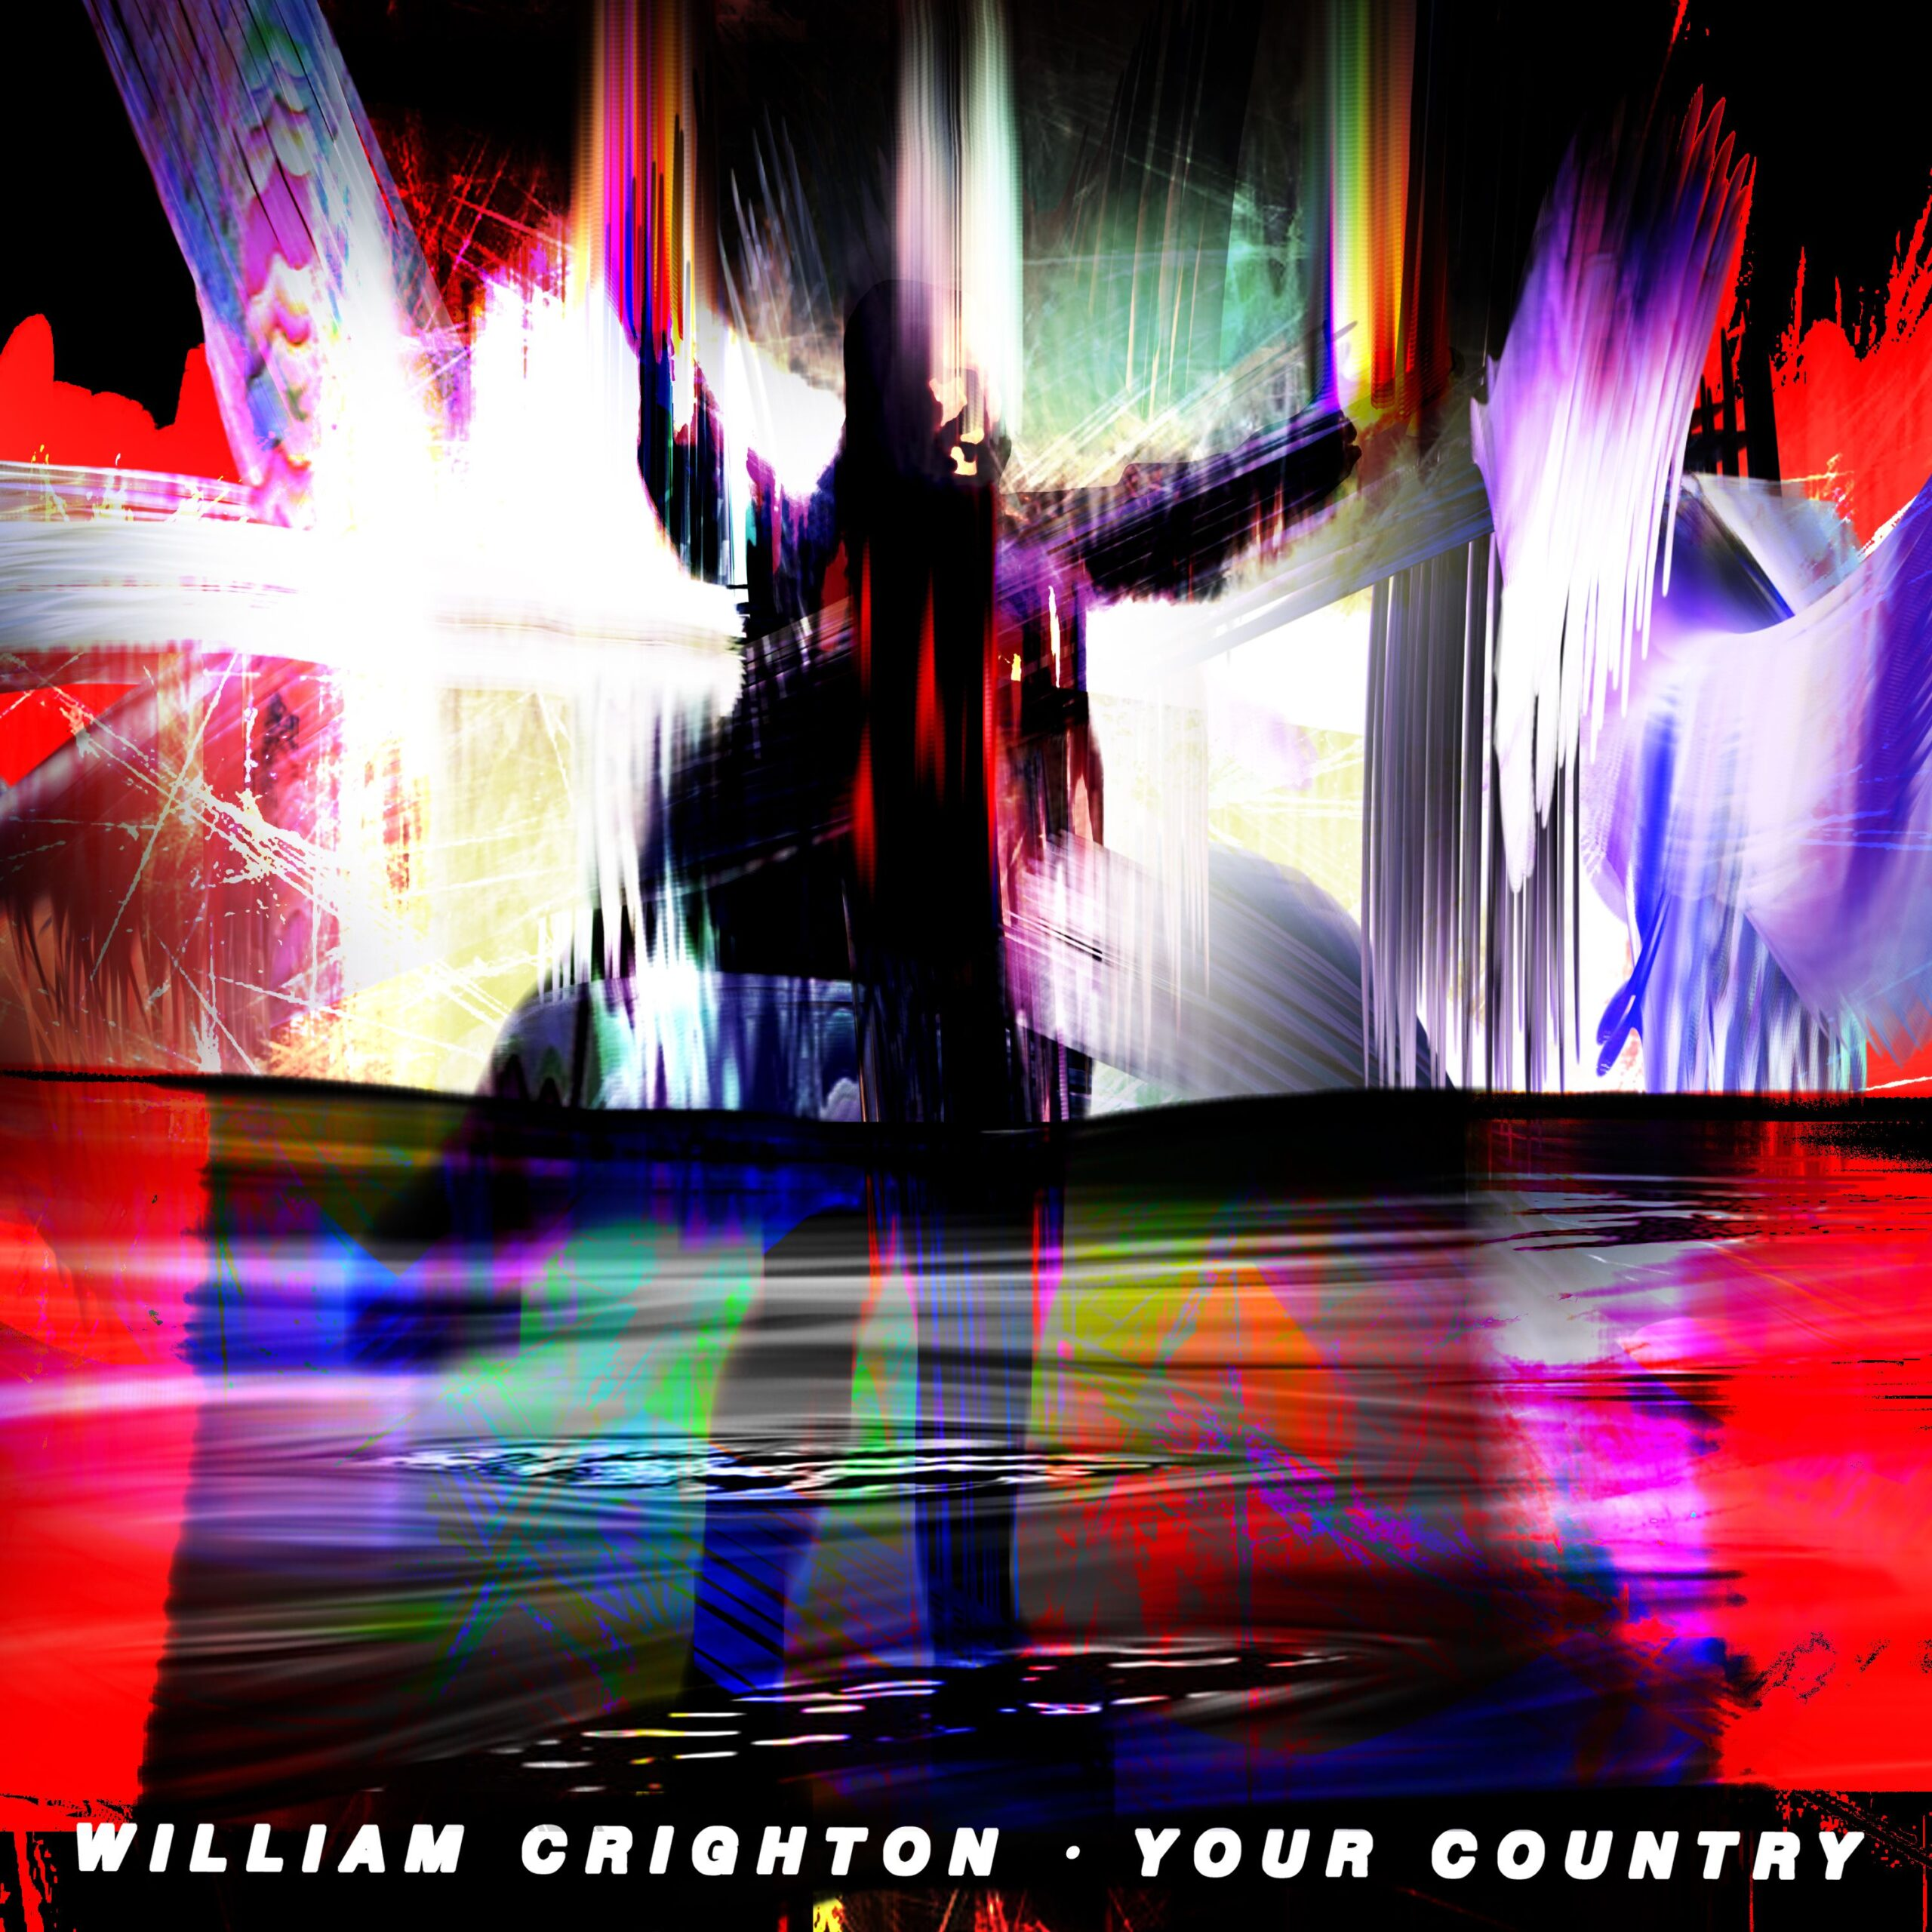 WILLIAM CRIGHTON 'YOUR COUNTRY' SINGLE & VIDEO JUST RELEASED POWERFUL NEW SONG TAKES AIM AT ENVIRONMENTAL POLICY